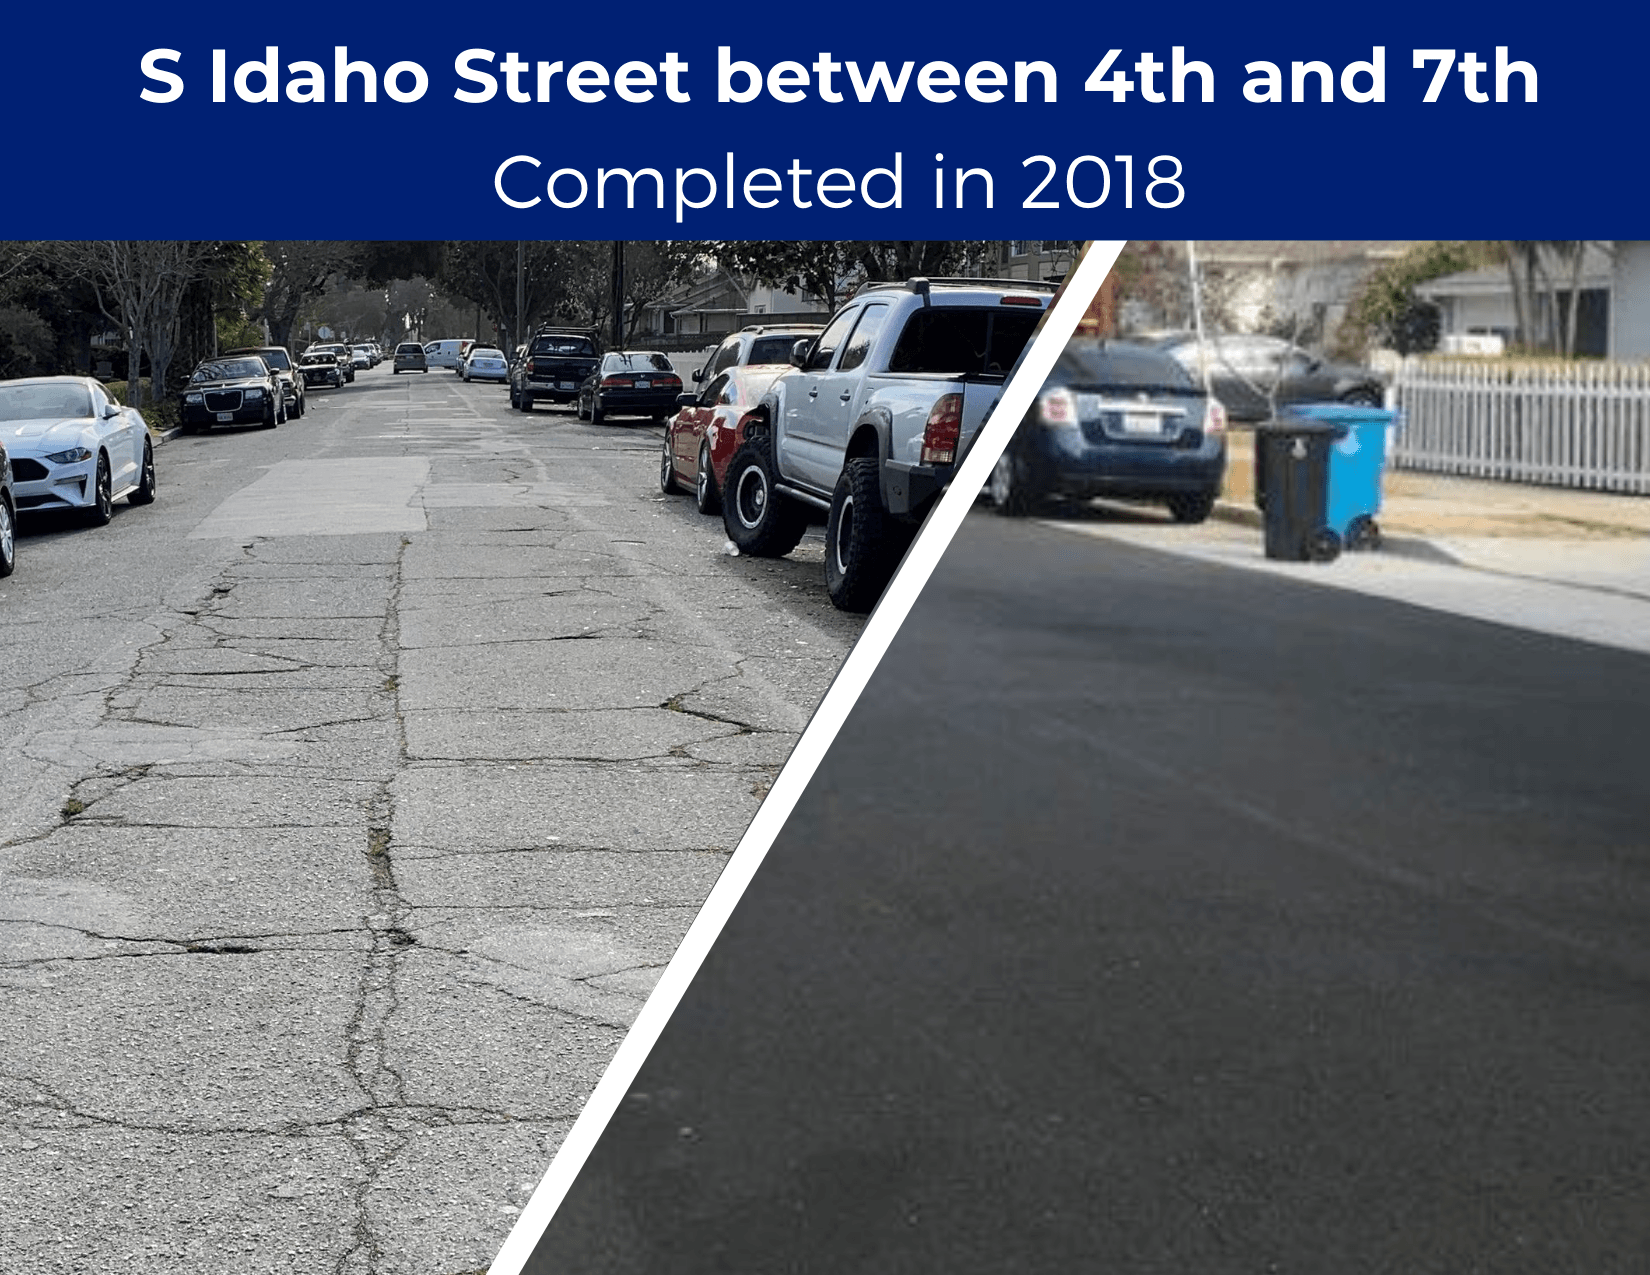 S Idaho Street between 4th and 7th Completed in 2018